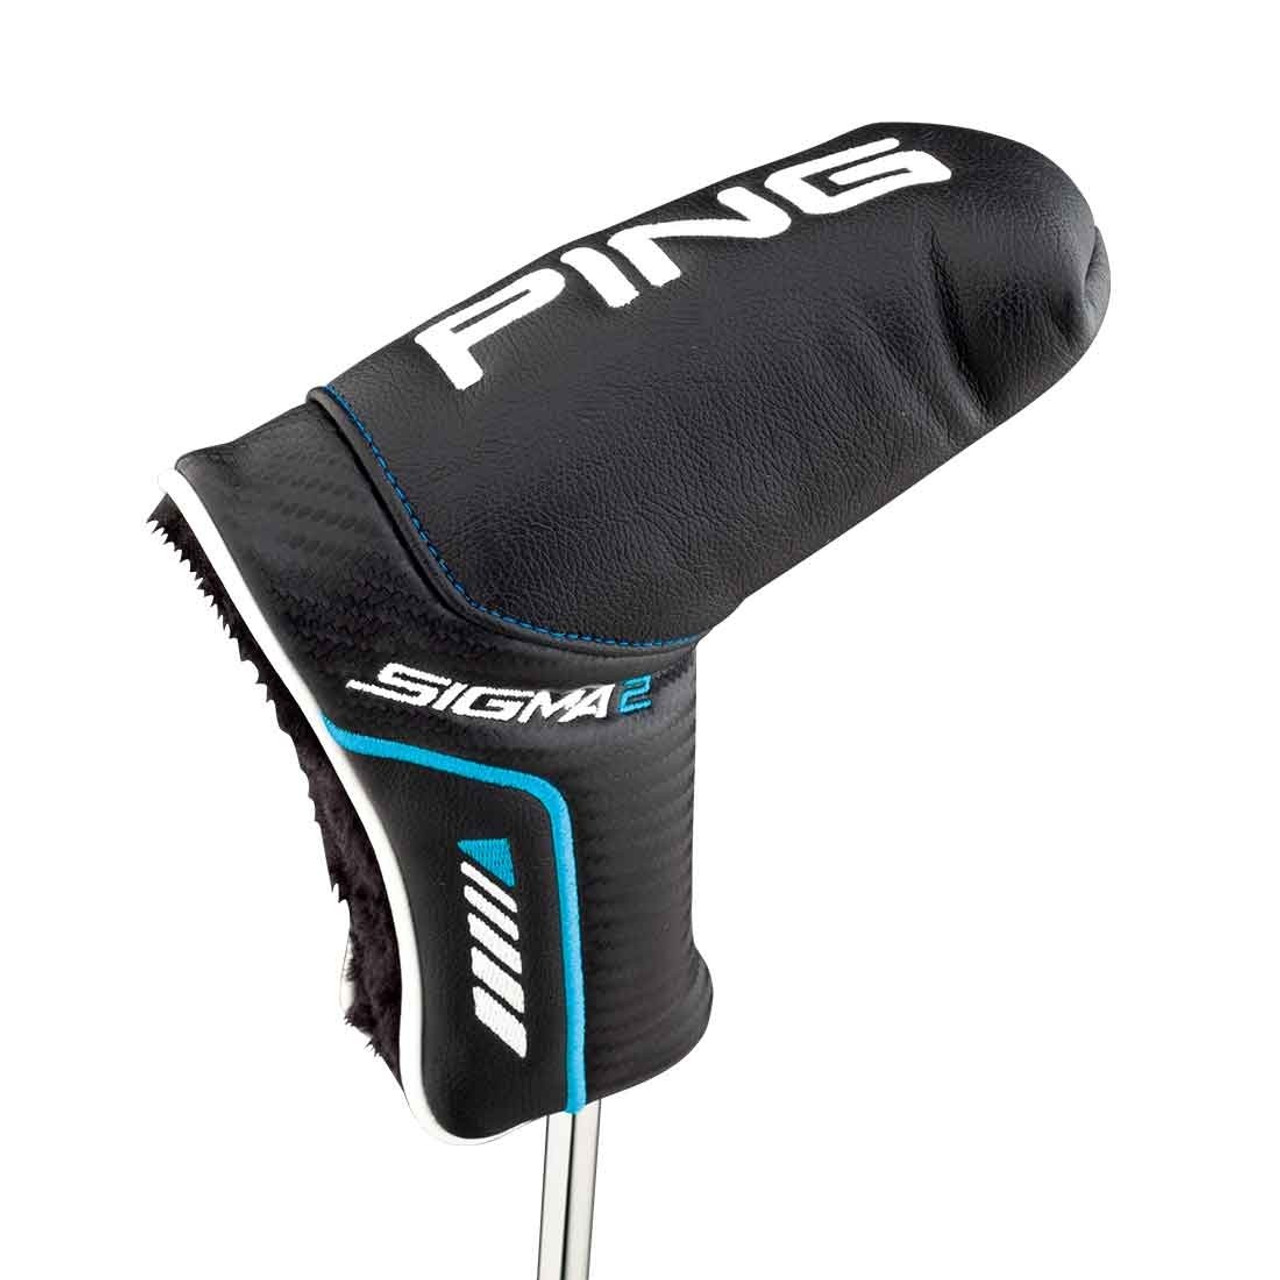 Ping Sigma 2 Headcover